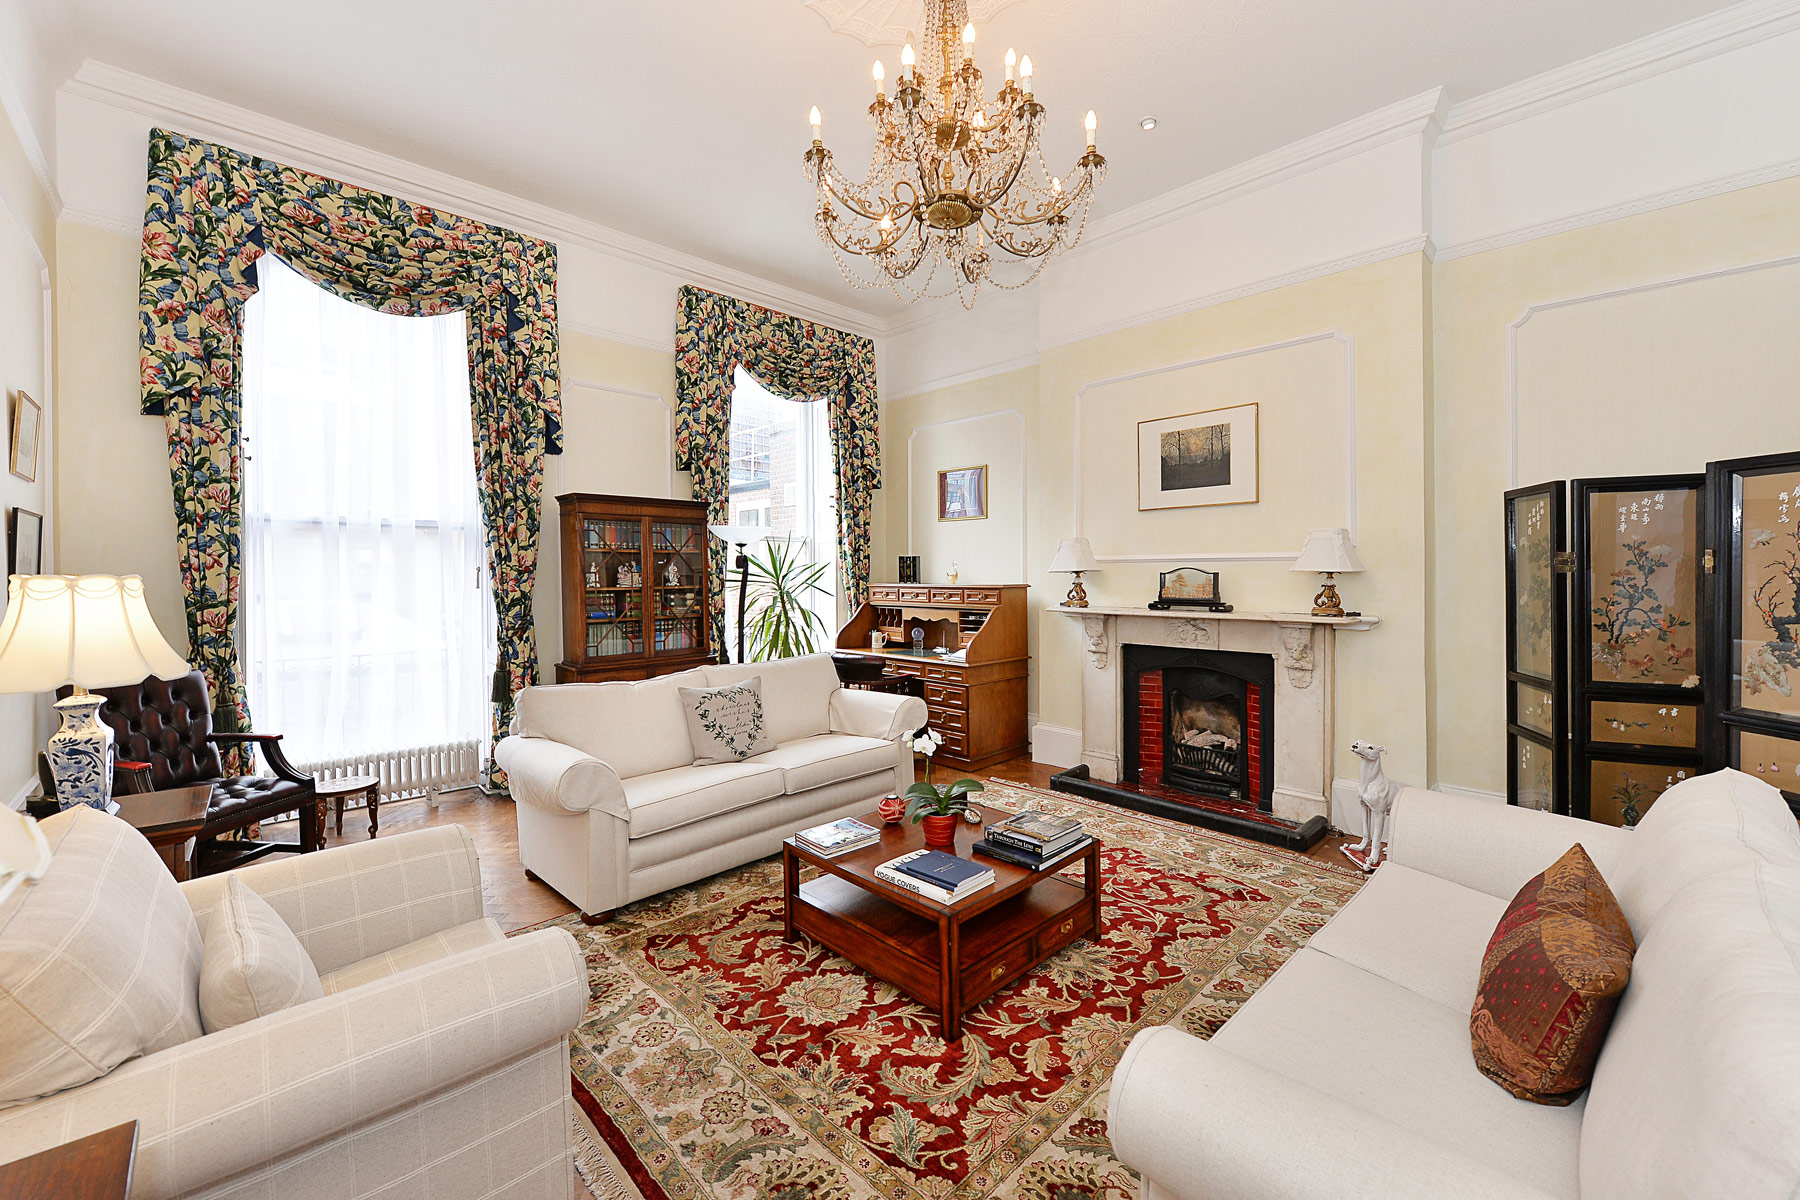 Marylebone Mansion That Inspired My Fair Lady Movie Comes To Market